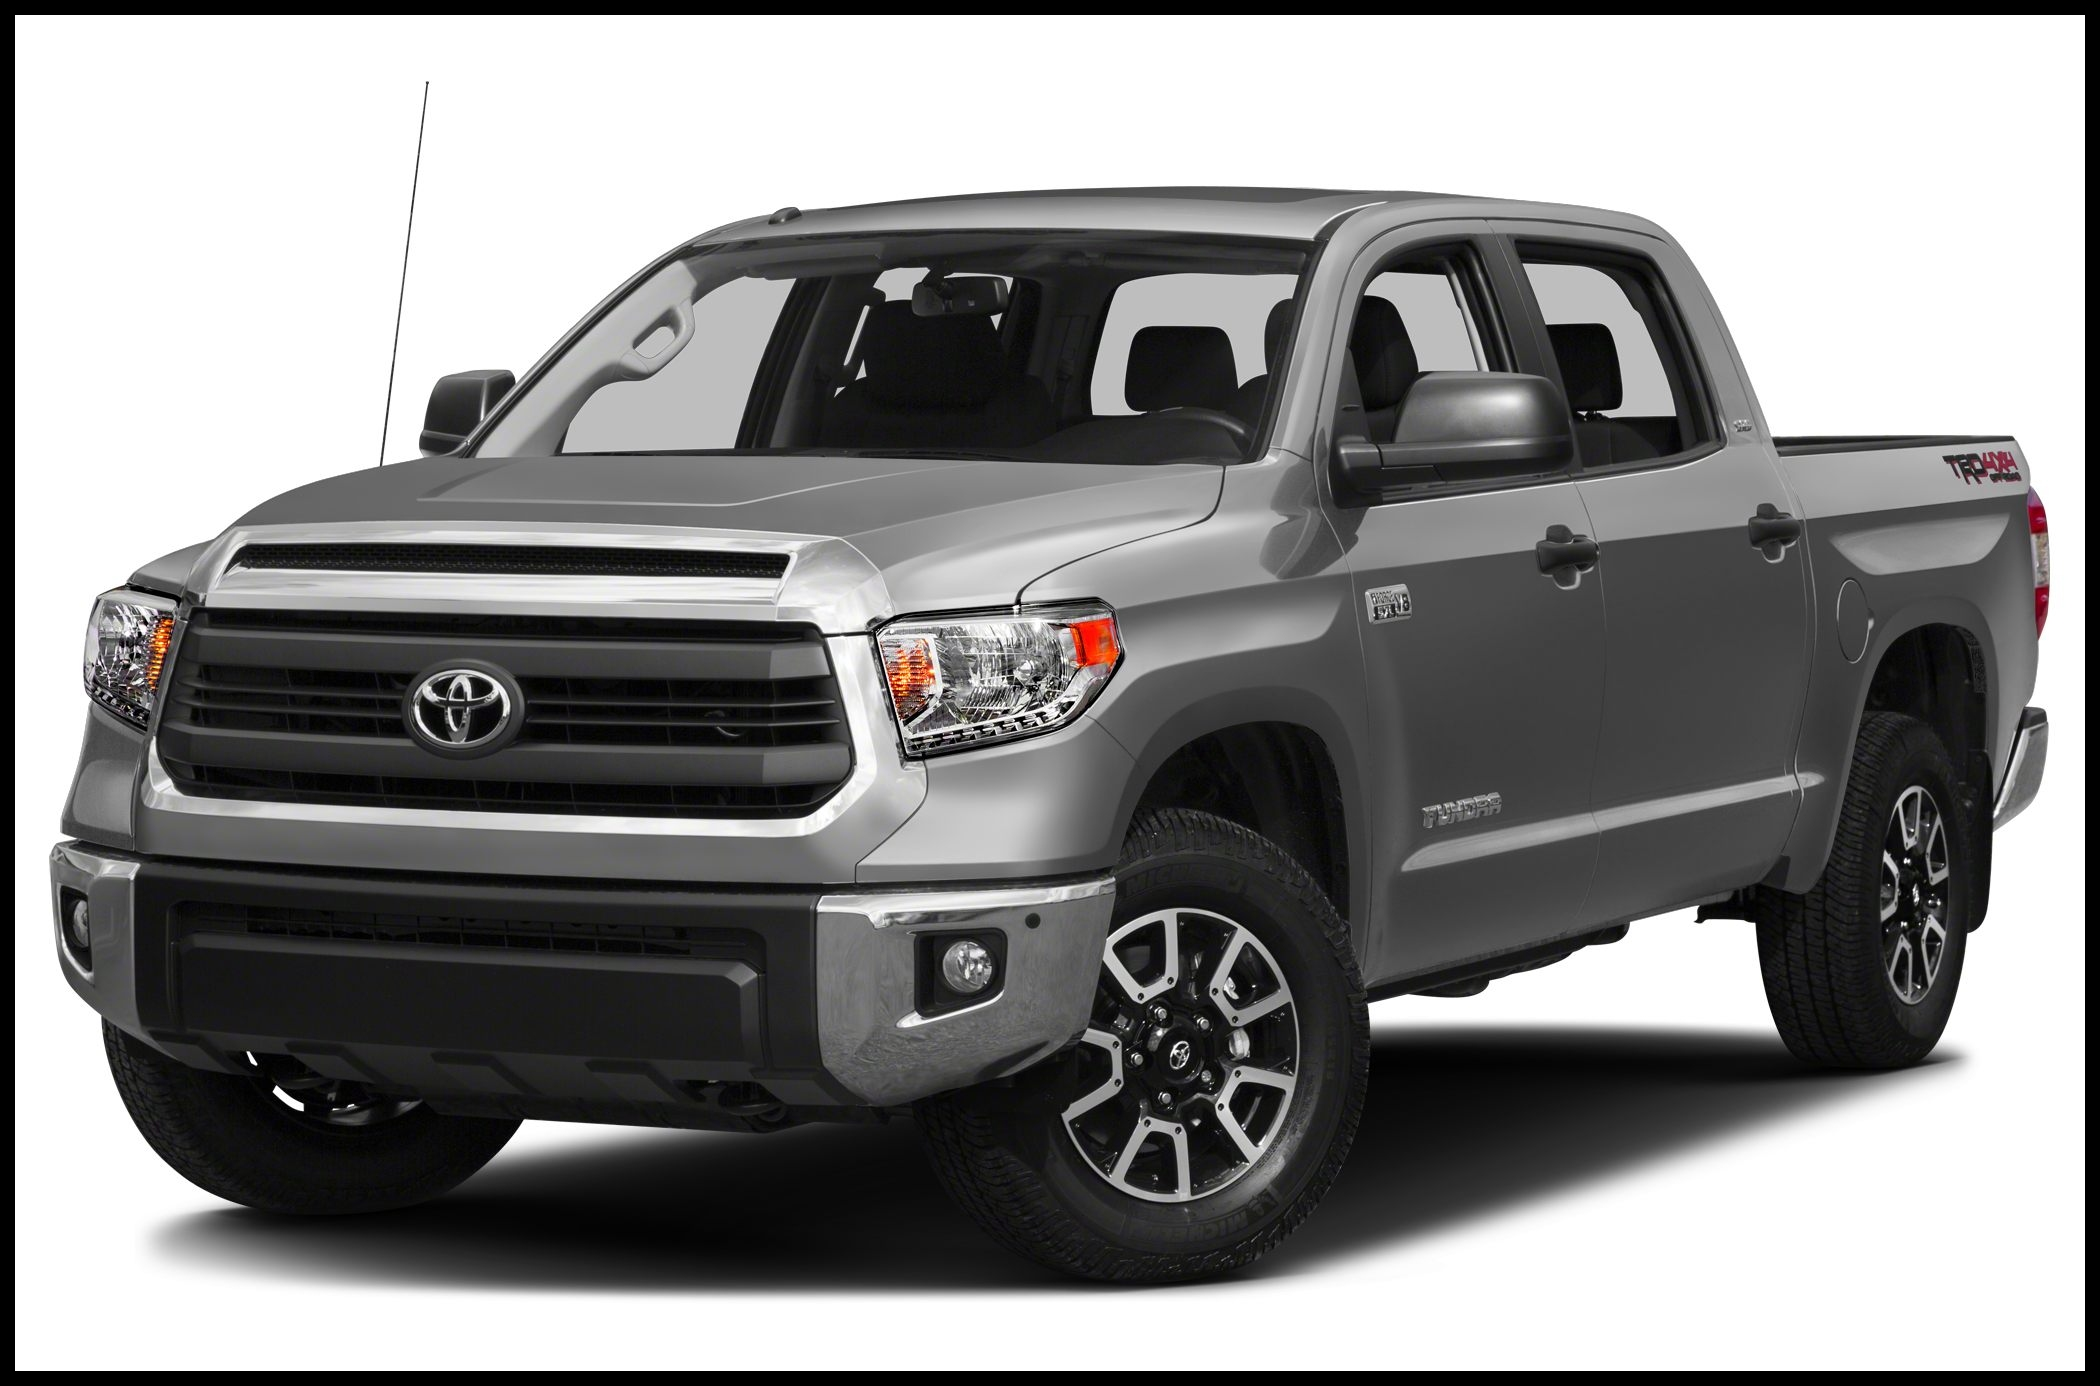 2014 Toyota Tundra SR5 4 6L V8 4x2 Crew Max 5 6 ft box 145 7 in WB Pricing and Options